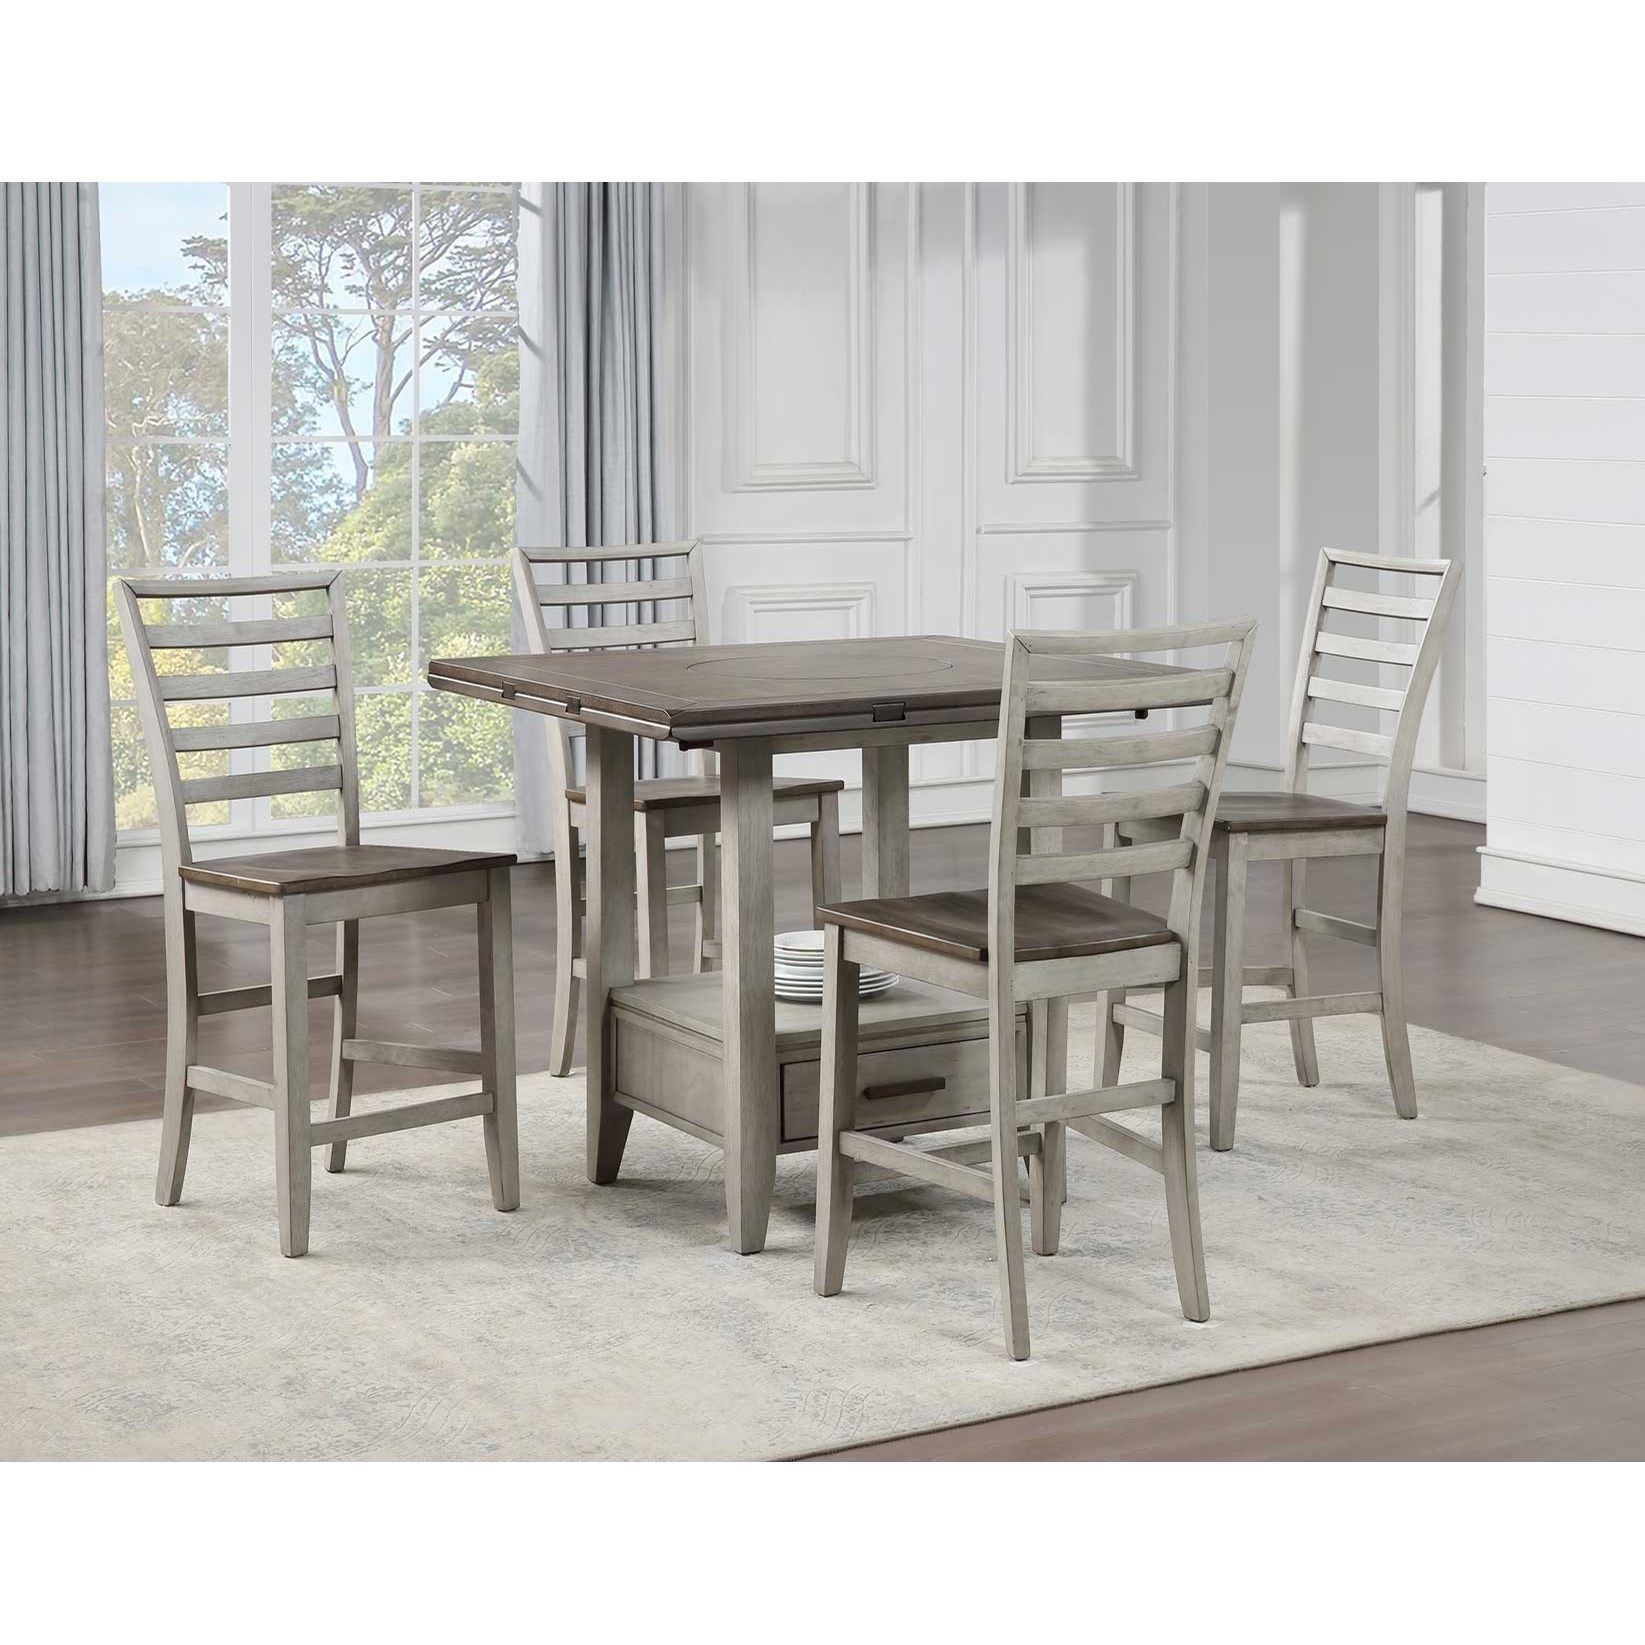 Abacus 5-Piece Counter Table and Chair Set by Steve Silver at Dream Home Interiors